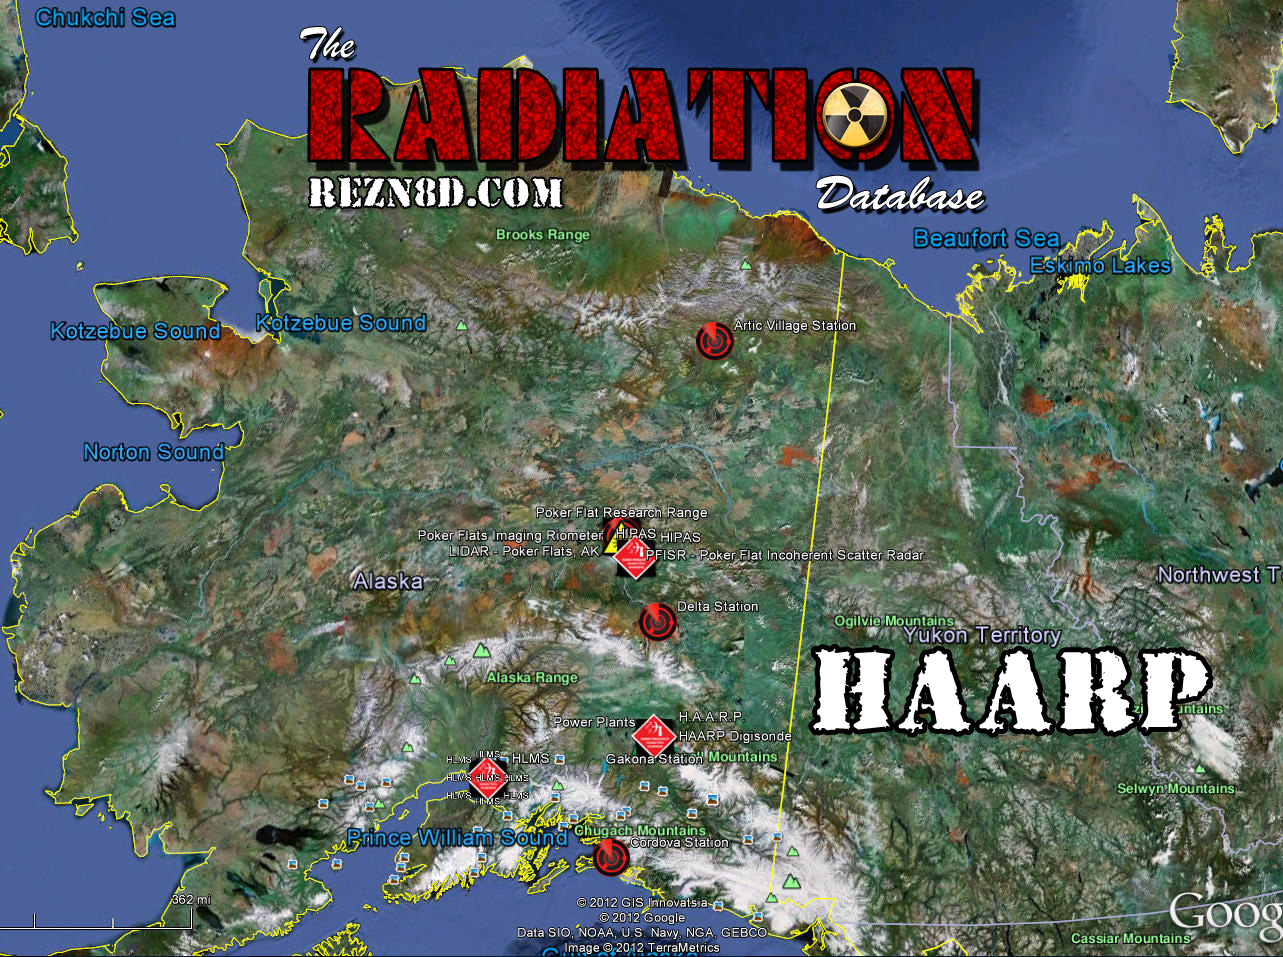 http://r3zn8d.files.wordpress.com/2012/03/haarp-hipas-poker-flat-hlms-the-radiation-database.jpg